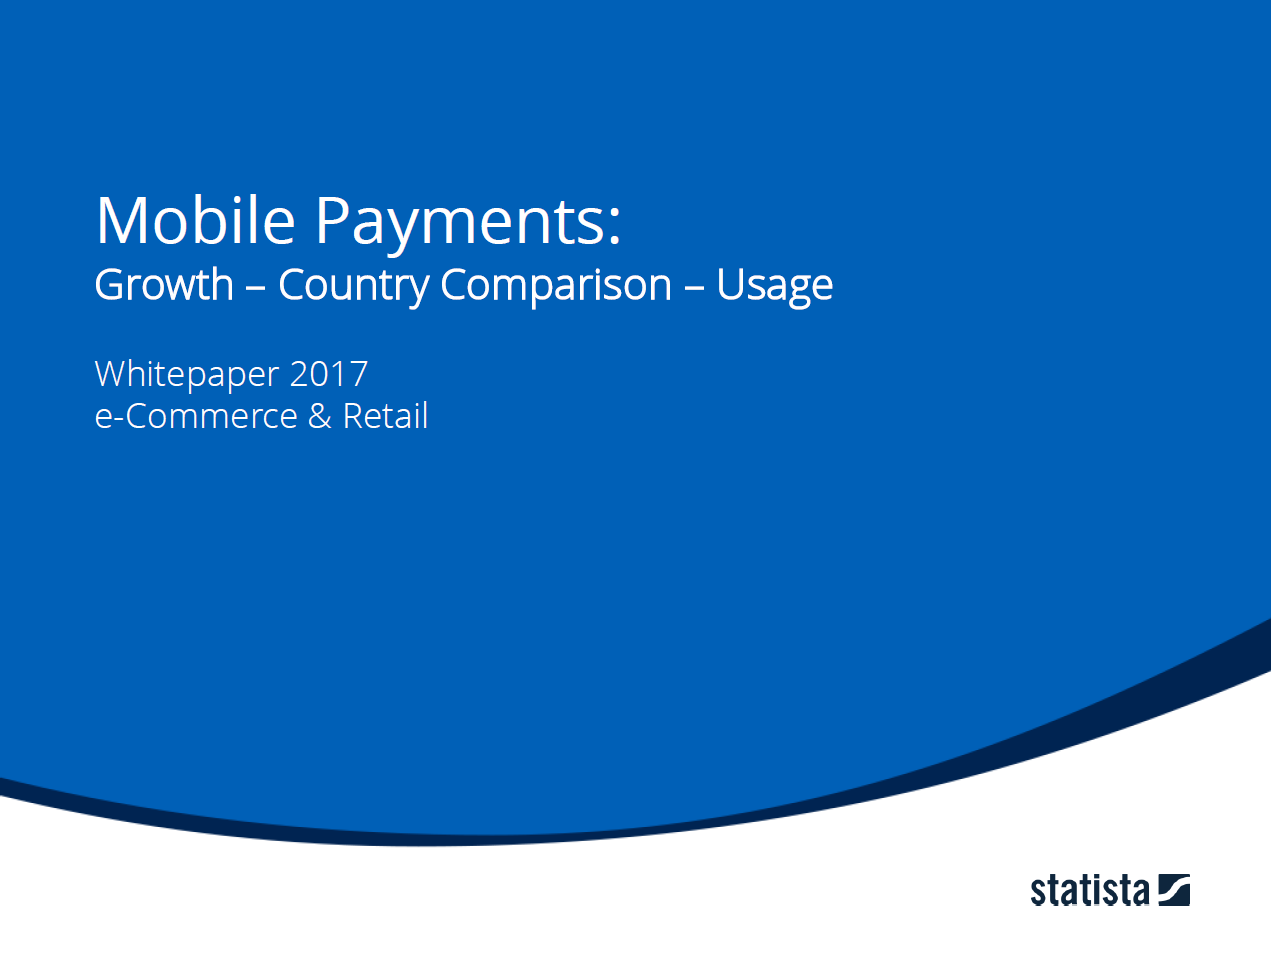 Mobile Payments: Growth, Country Comparison & Usage